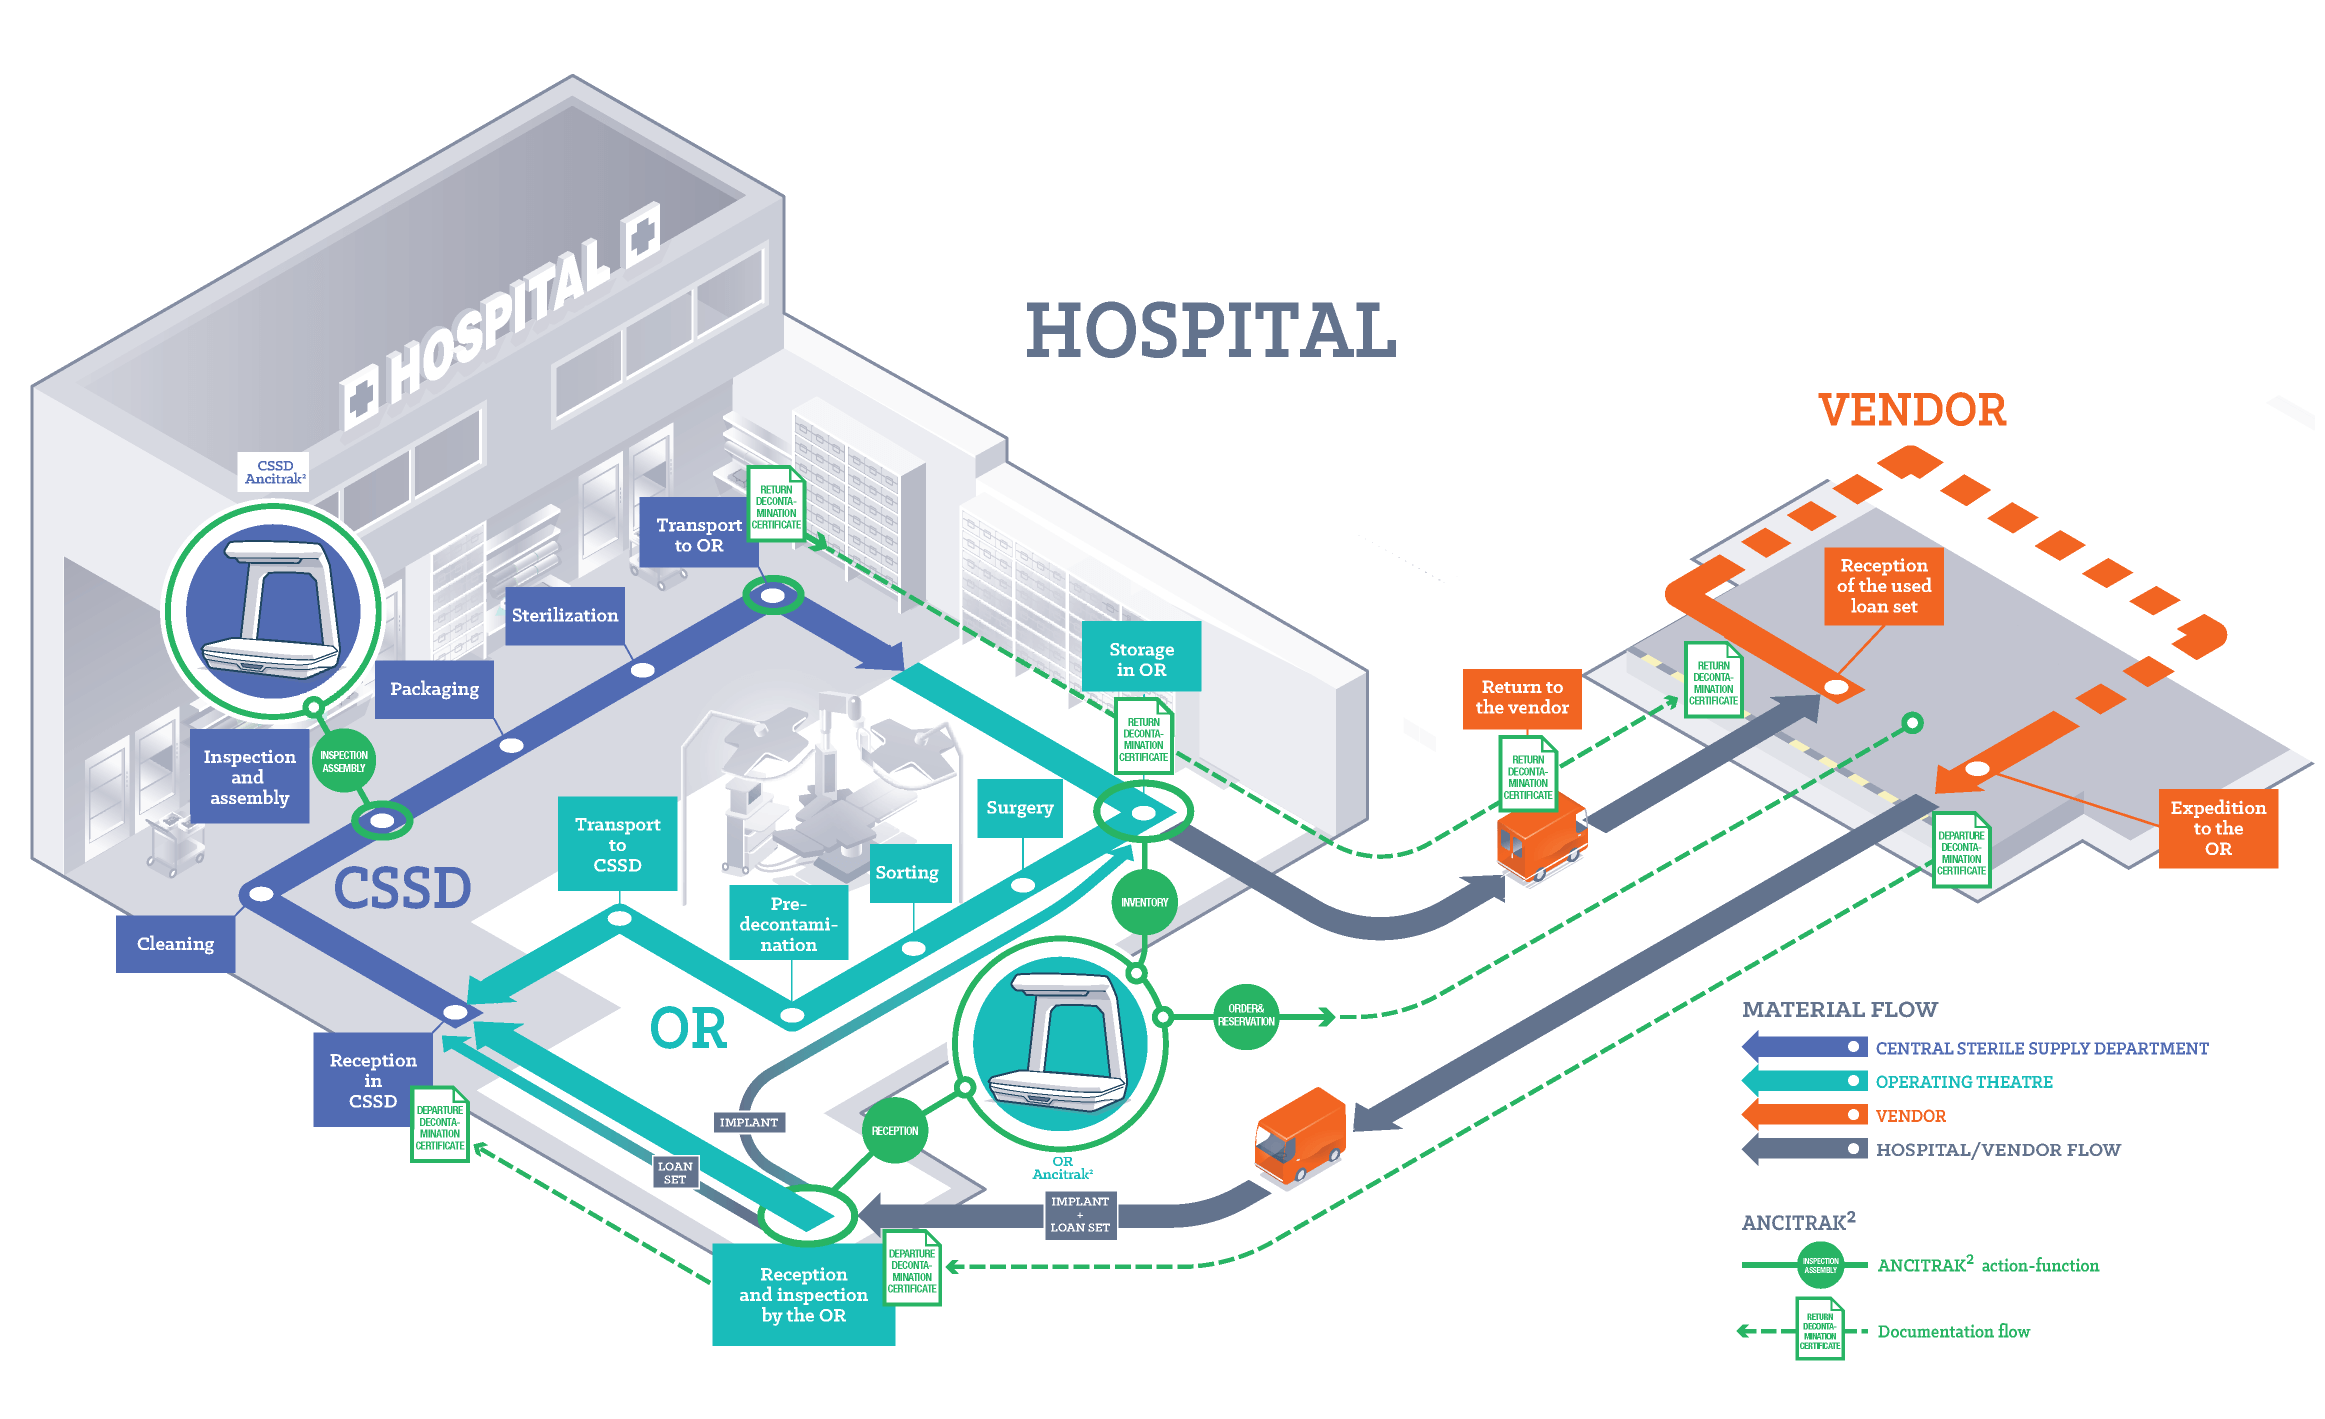 imrove workflow between CSSD & OR and between hospital and vendor